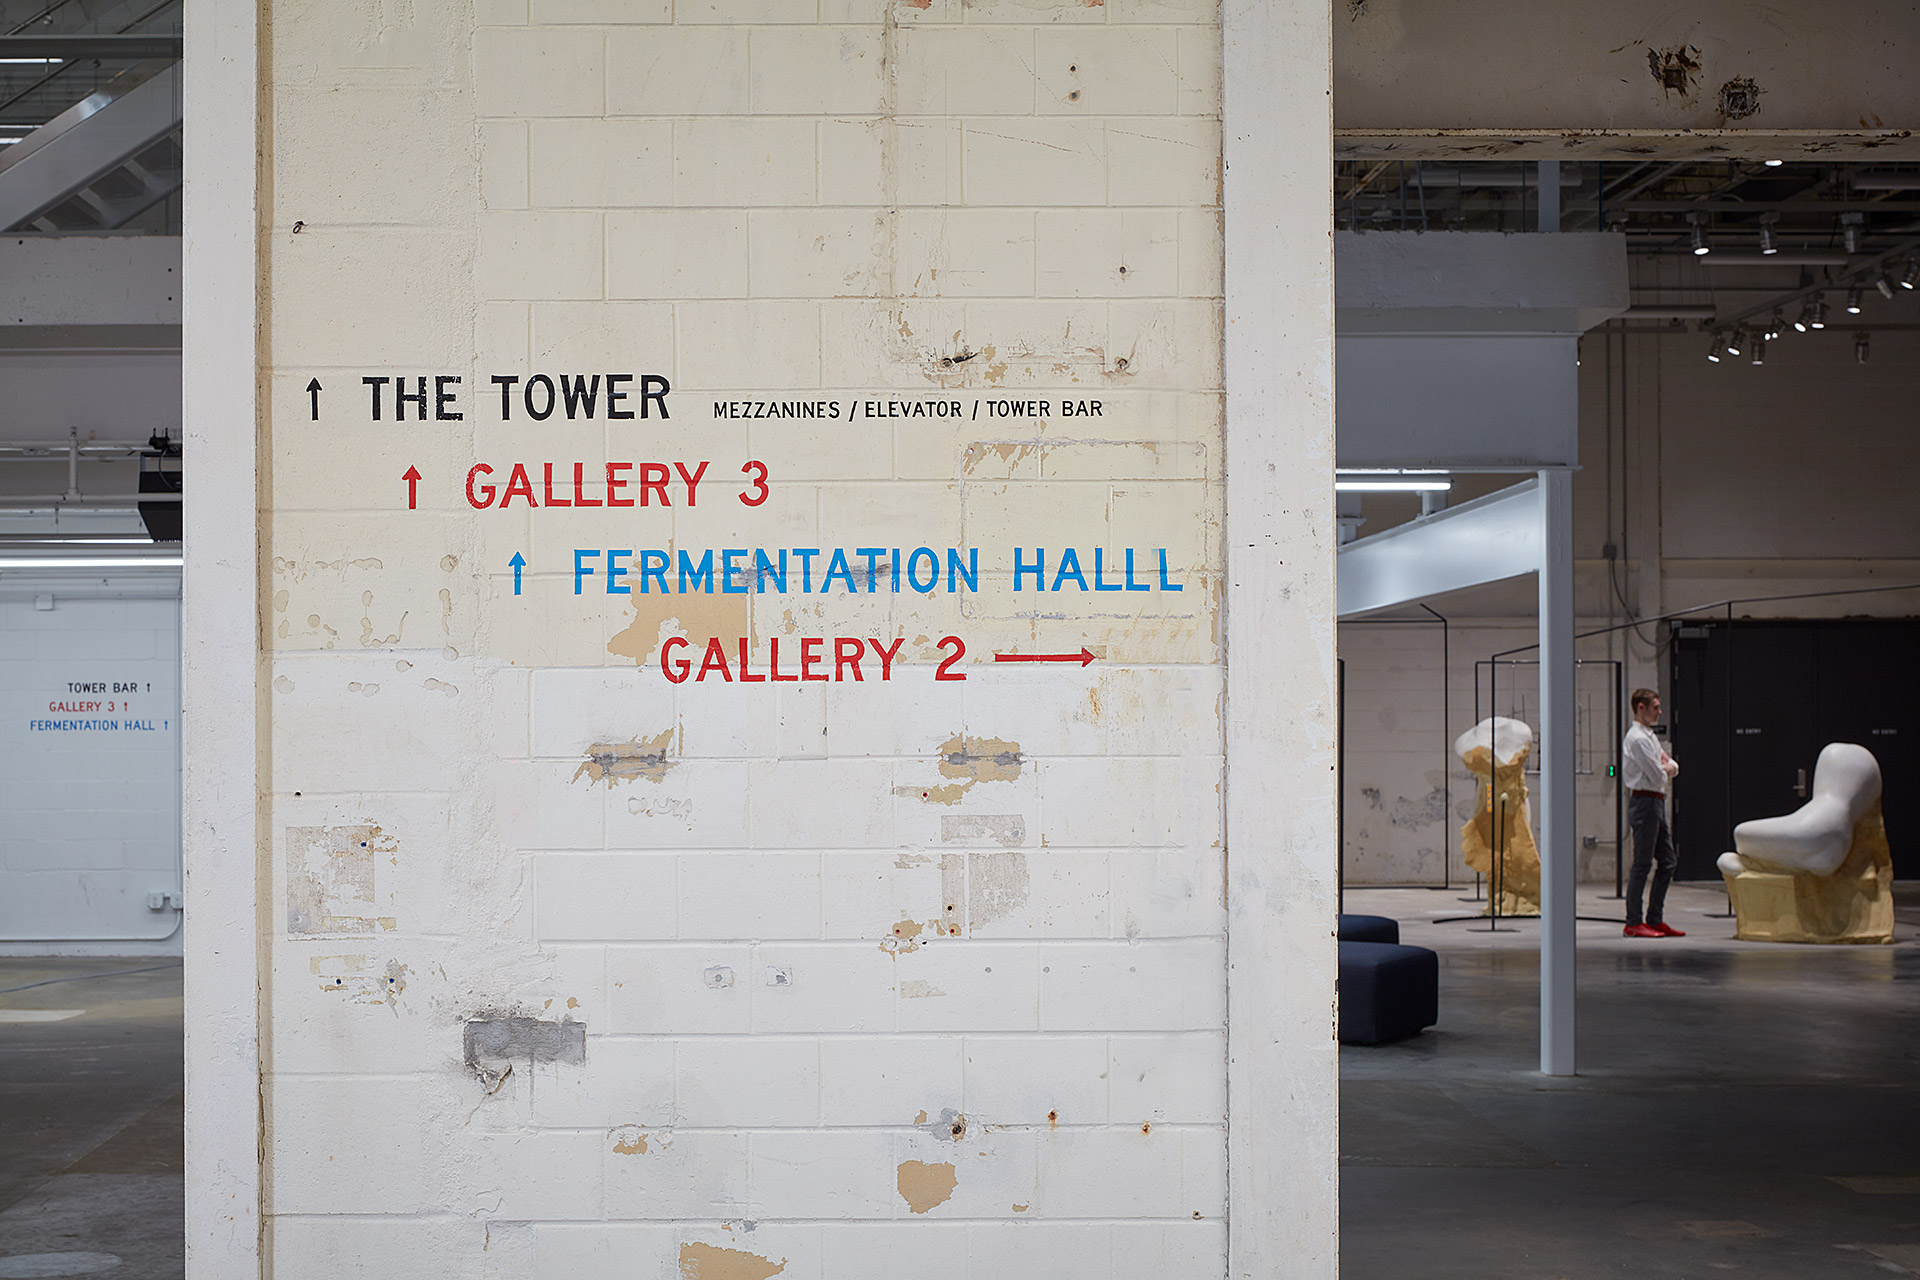 A sign on a brick wall leading to the tower, gallery 3, or the fermentation hall